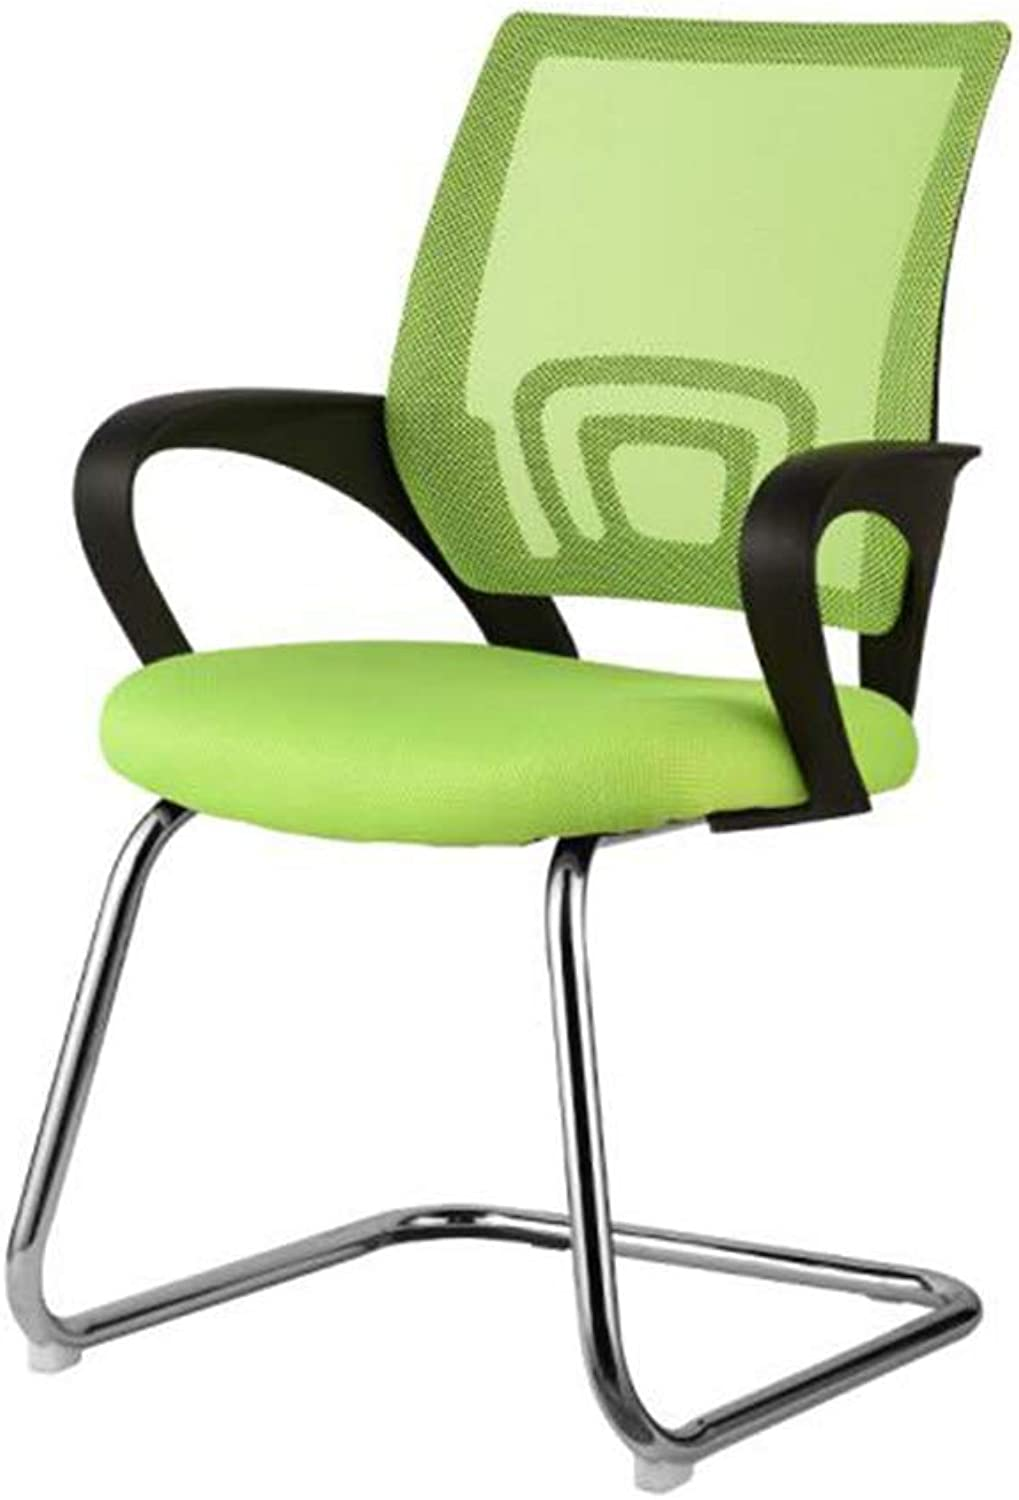 XUERUI Armchairs Chair Computer Desk Mesh Mid Back with Breathable Foam Pad and Steel Frame Black Green orange Furniture (color   Green)